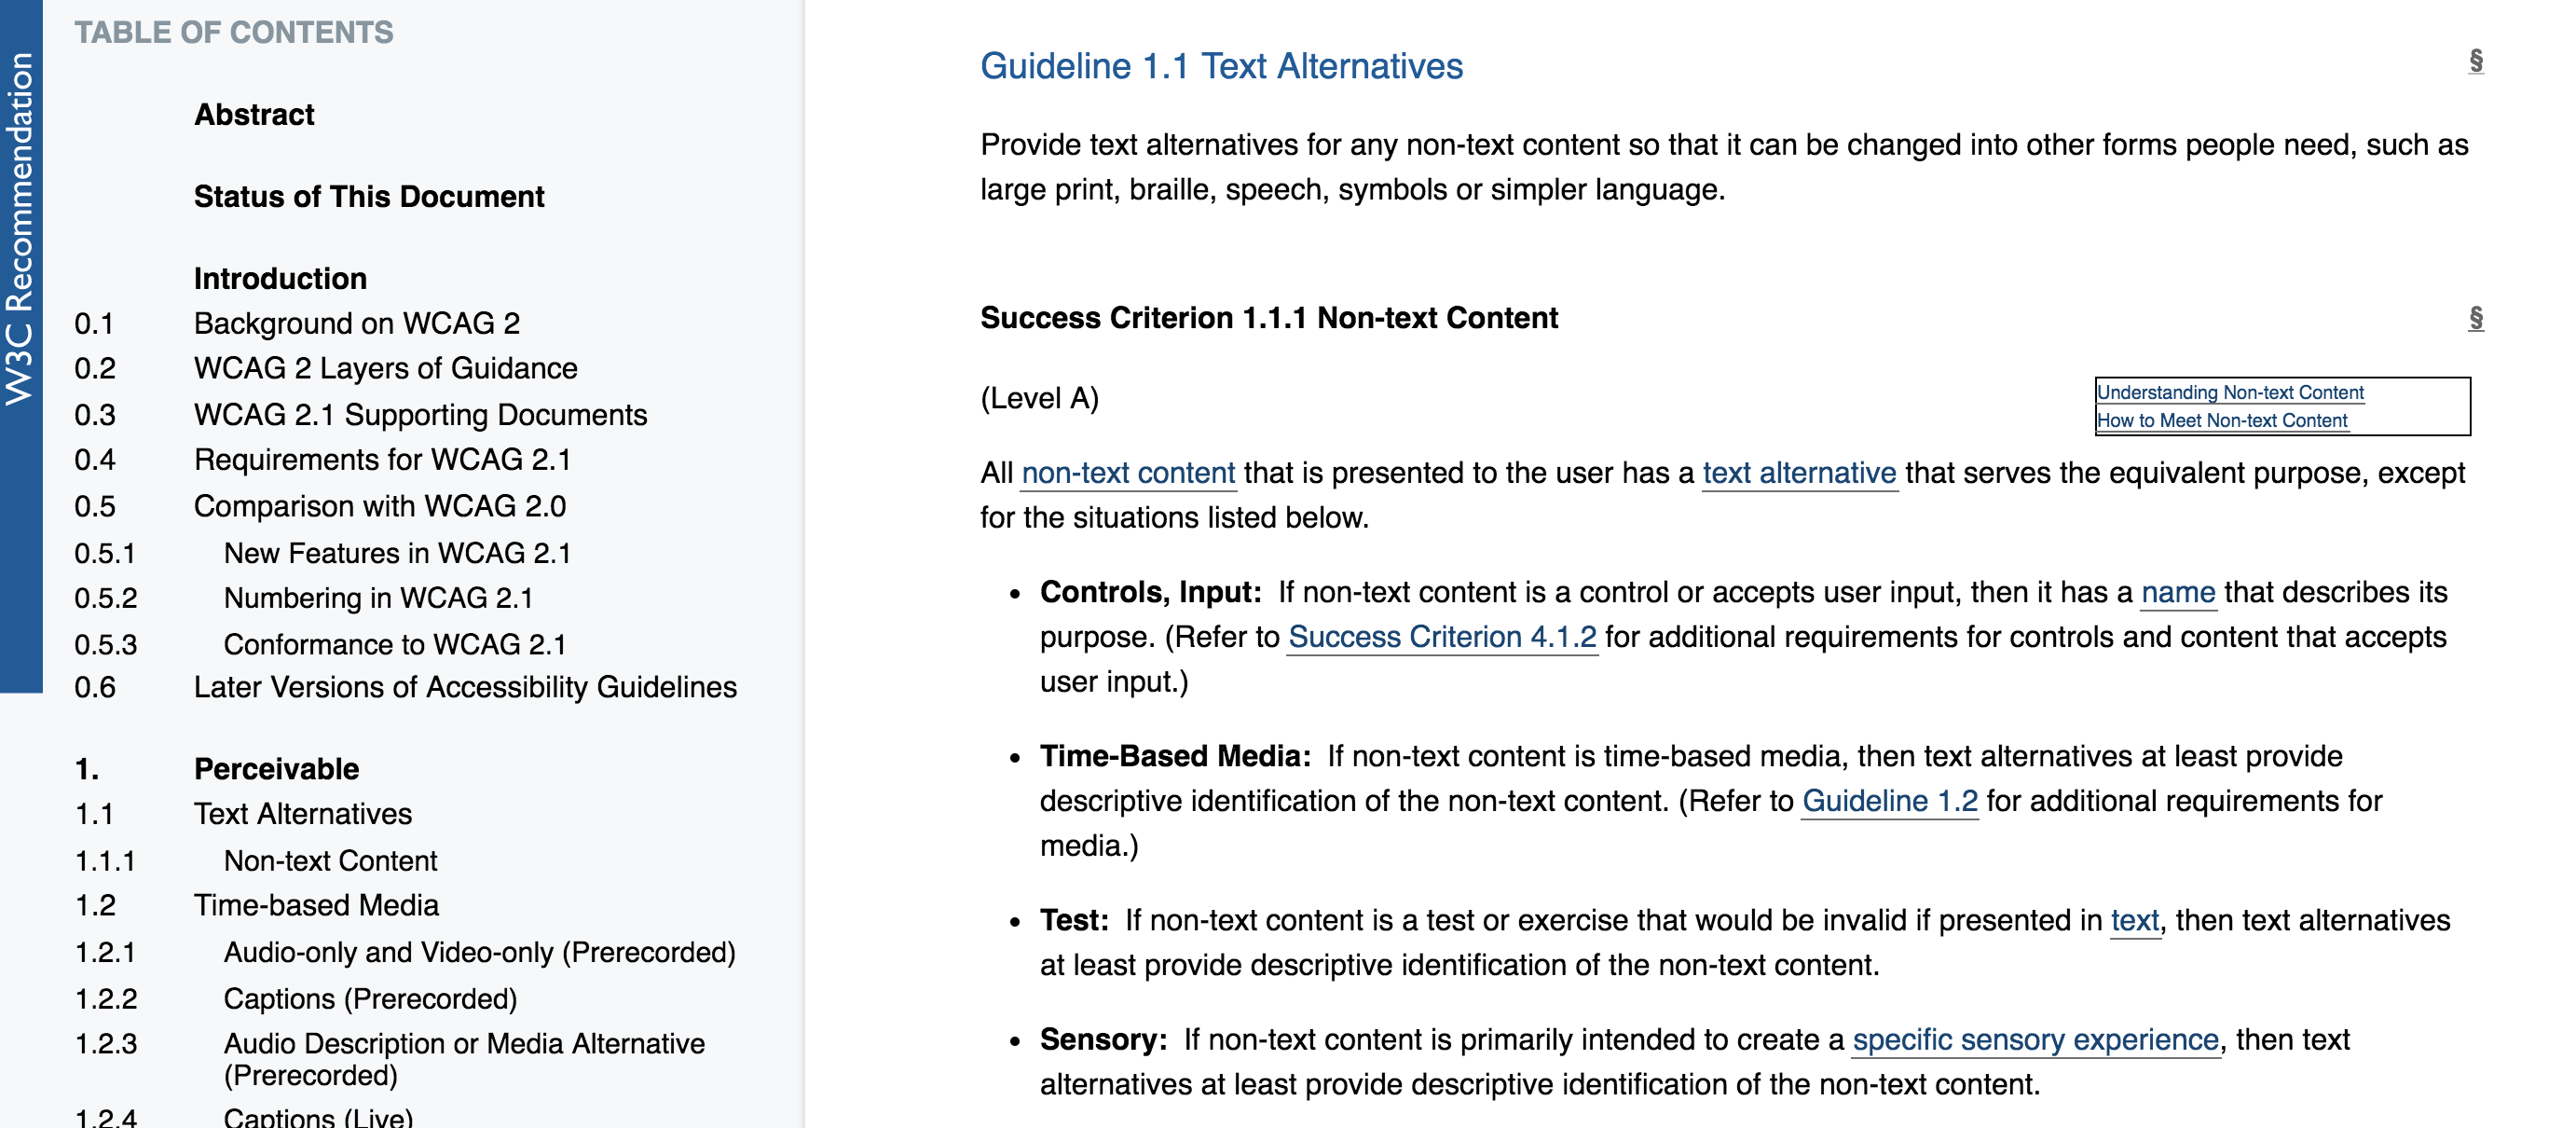 WCAG 2.1 Guideline on Text Alternatives, in amongst the text are links to success criterions and other useful guidelines